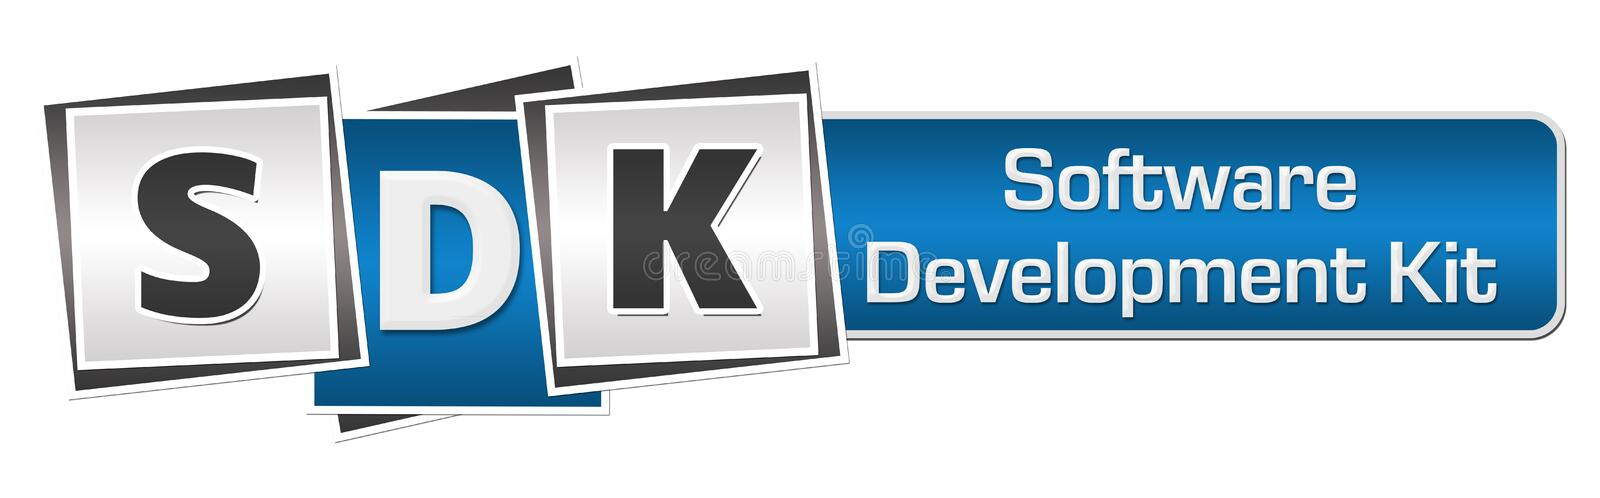 SDK - Software-ontwikkeling Kit Blue Grey Squares Bar vector illustratie